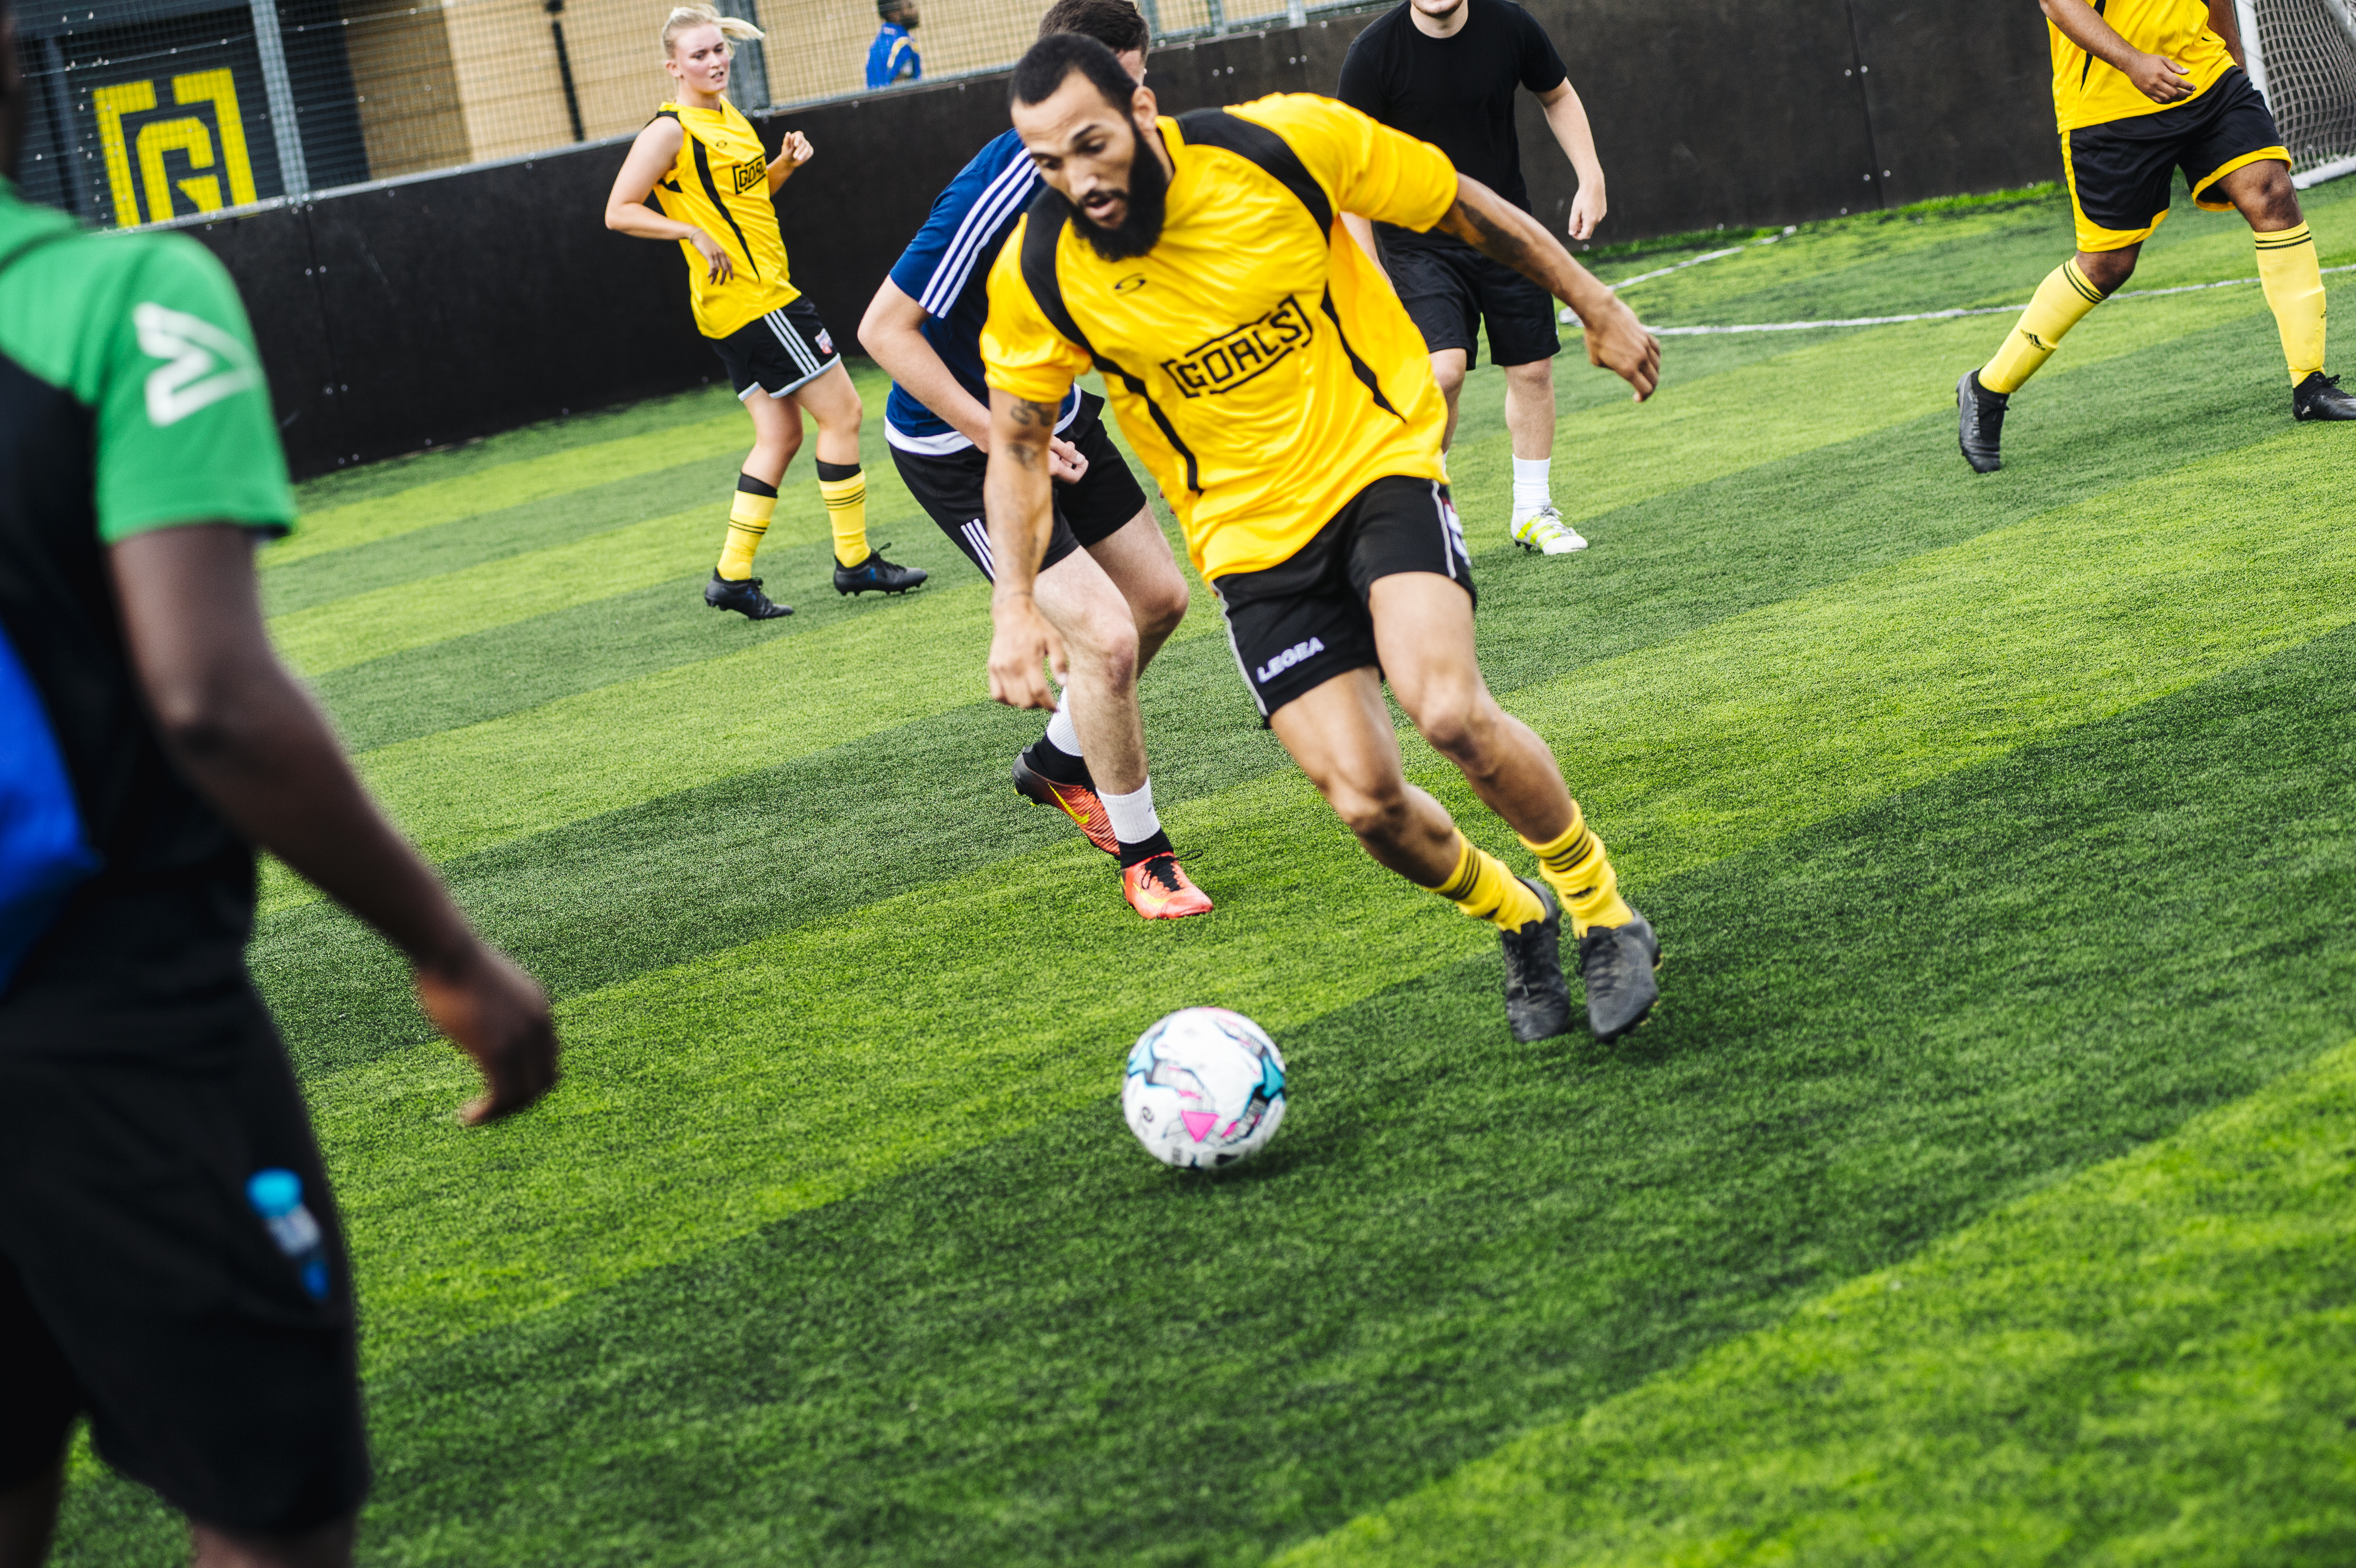 How five-a-side football can improve your health and fitness | JOE co uk